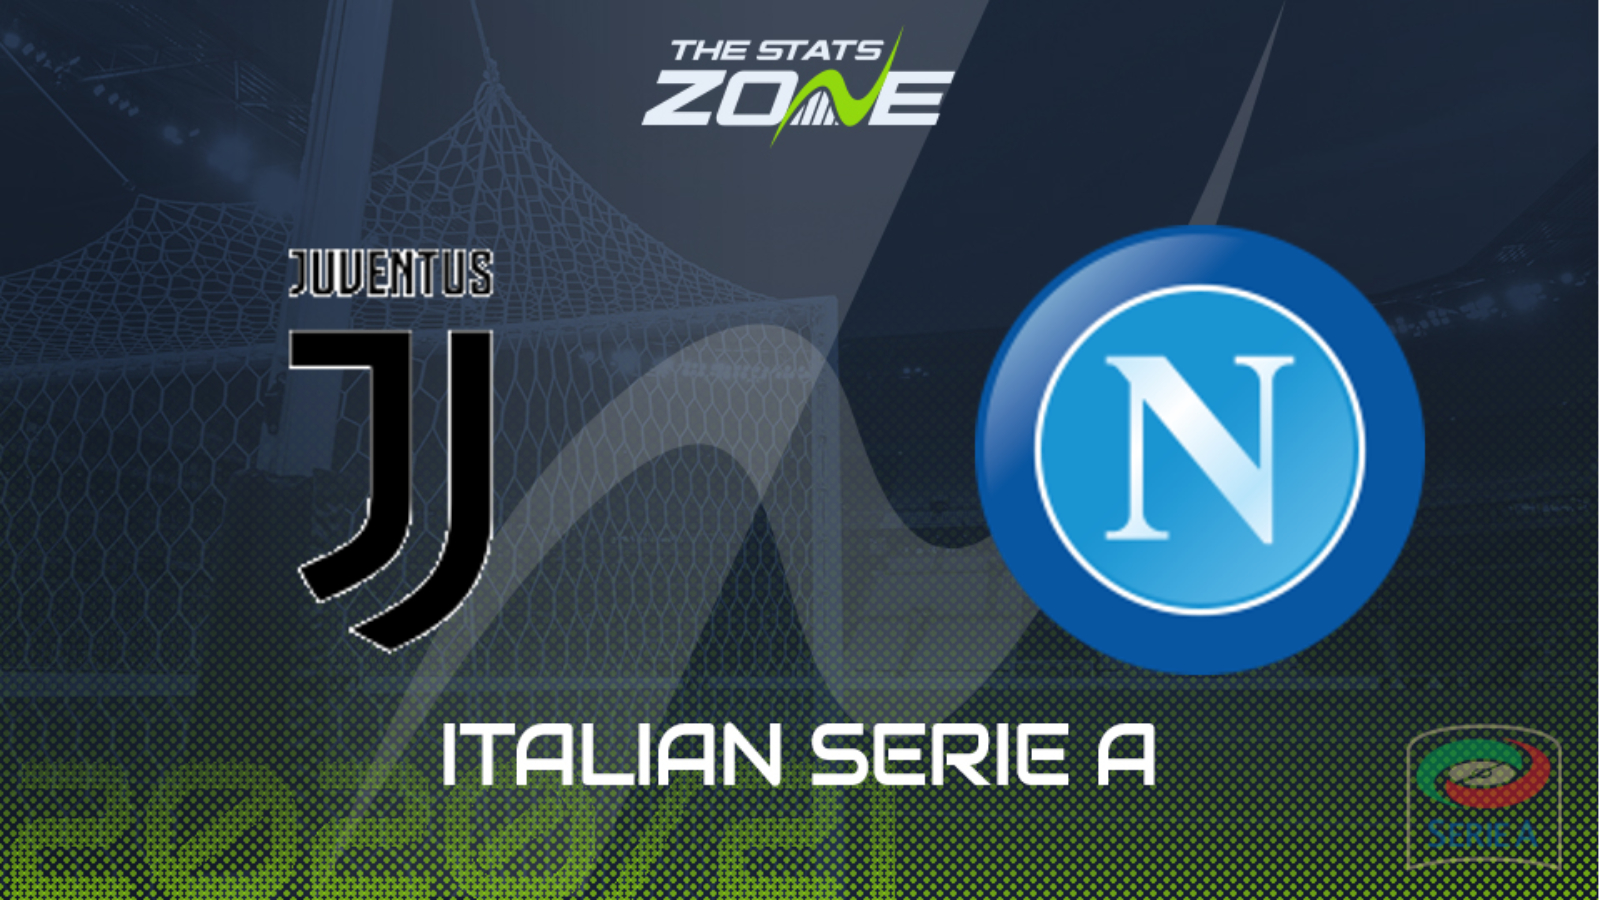 2020 21 Serie A Juventus Vs Napoli Preview Prediction The Stats Zone